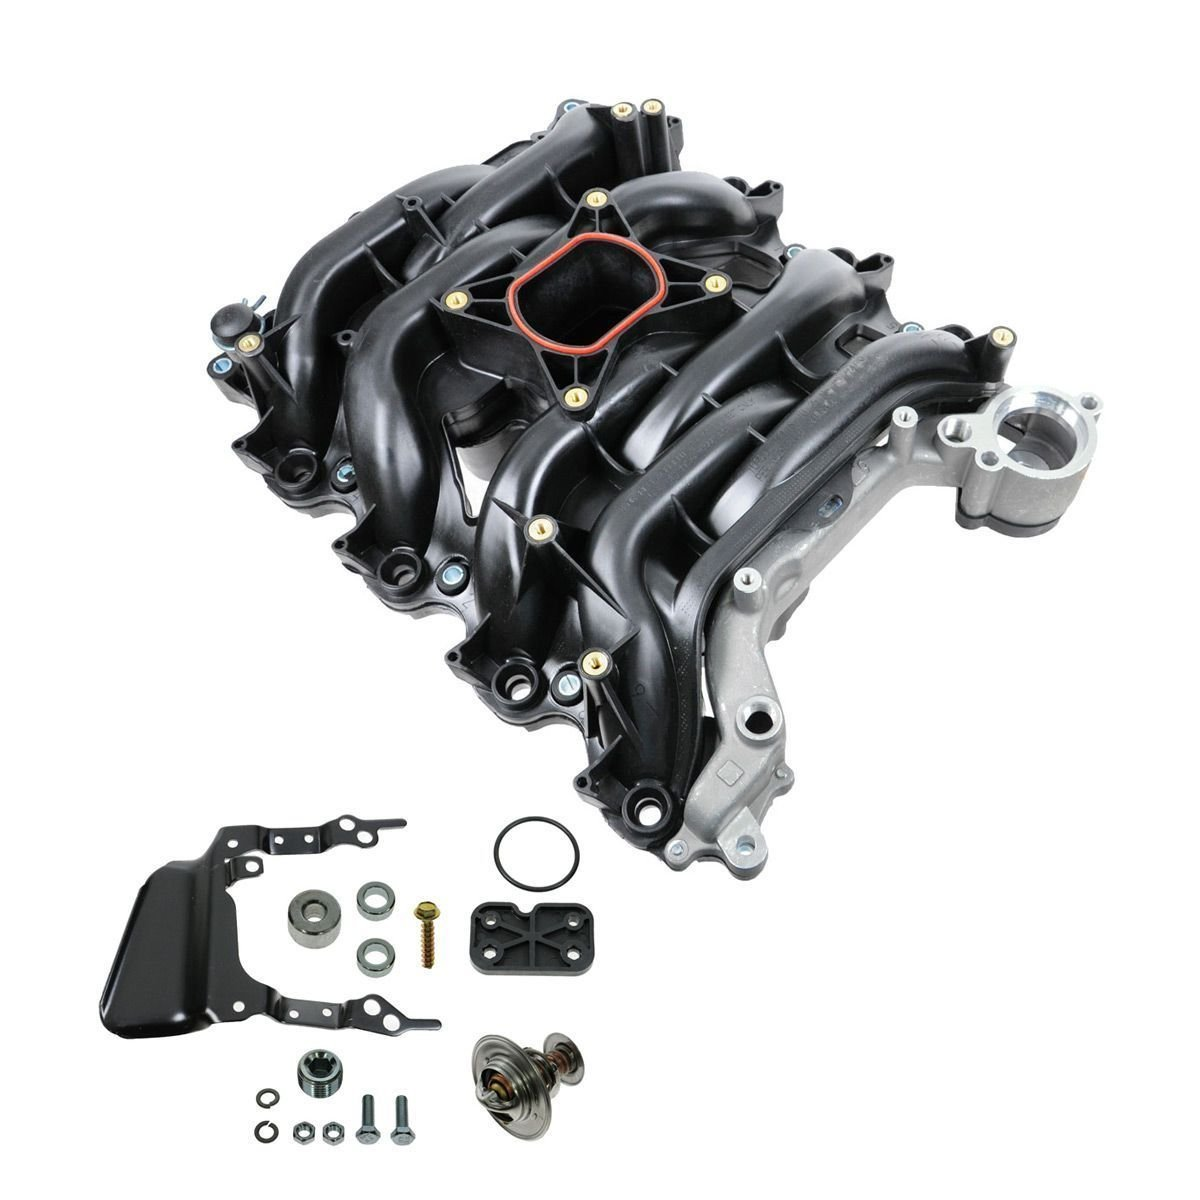 Amazon.com: Intake Manifold w/ Thermostat & Gaskets Kit NEW for Ford  Lincoln Mercury 4.6L V8: Automotive